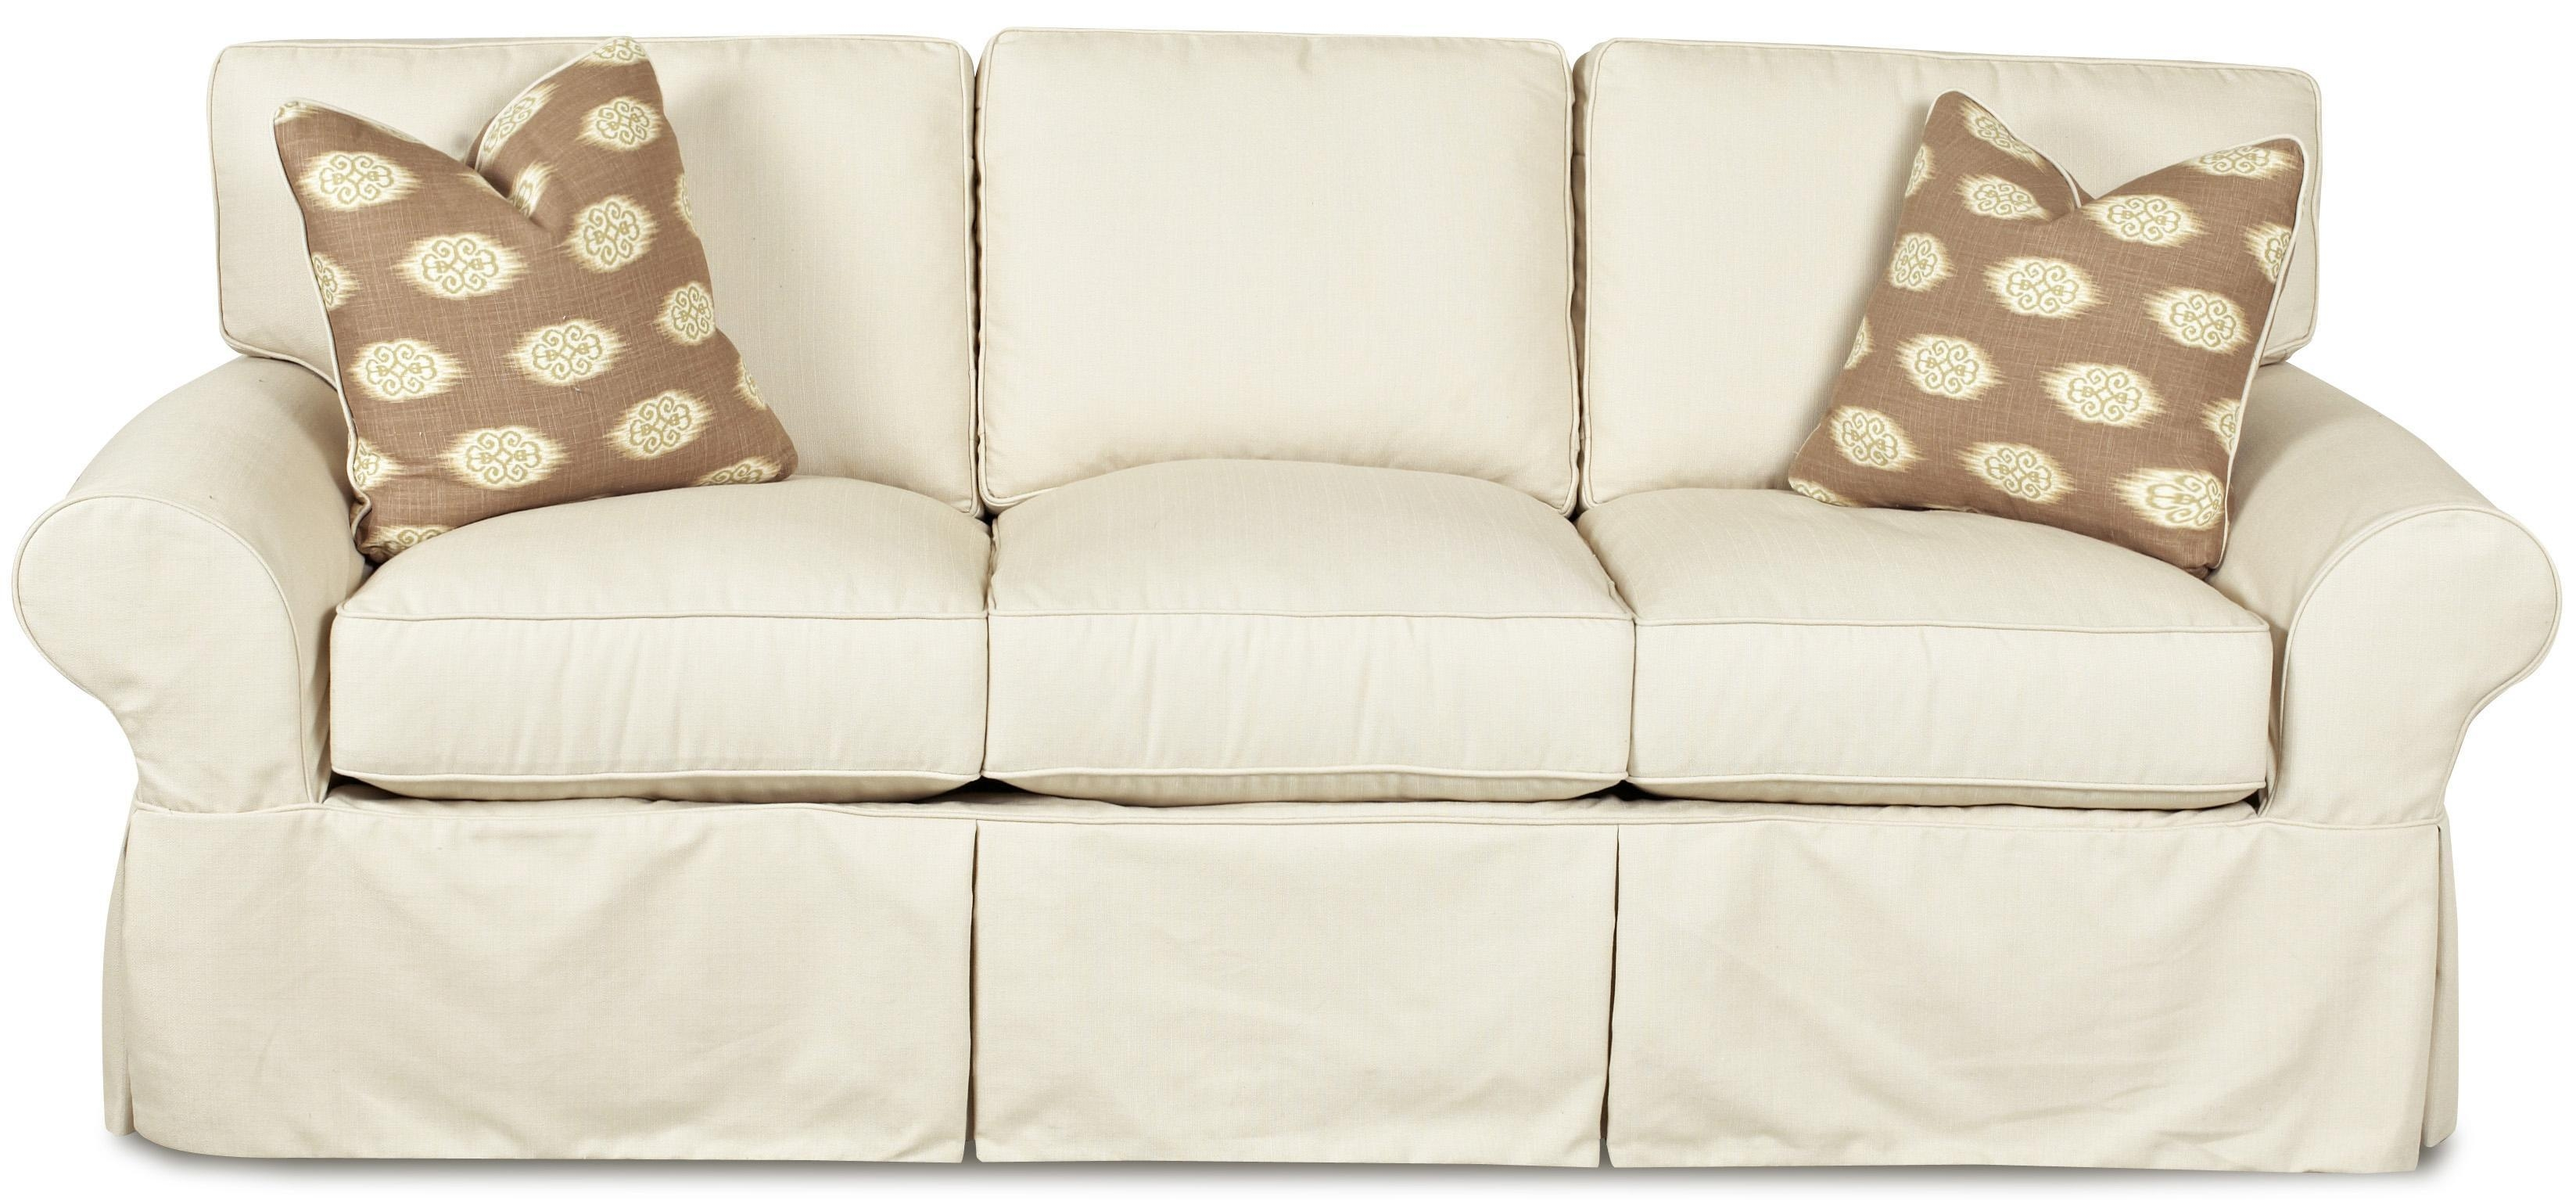 Furniture: Couch Cushion Slipcovers | T Cushion Chair Slipcovers Inside Sofa And Chair Slipcovers (Image 8 of 20)